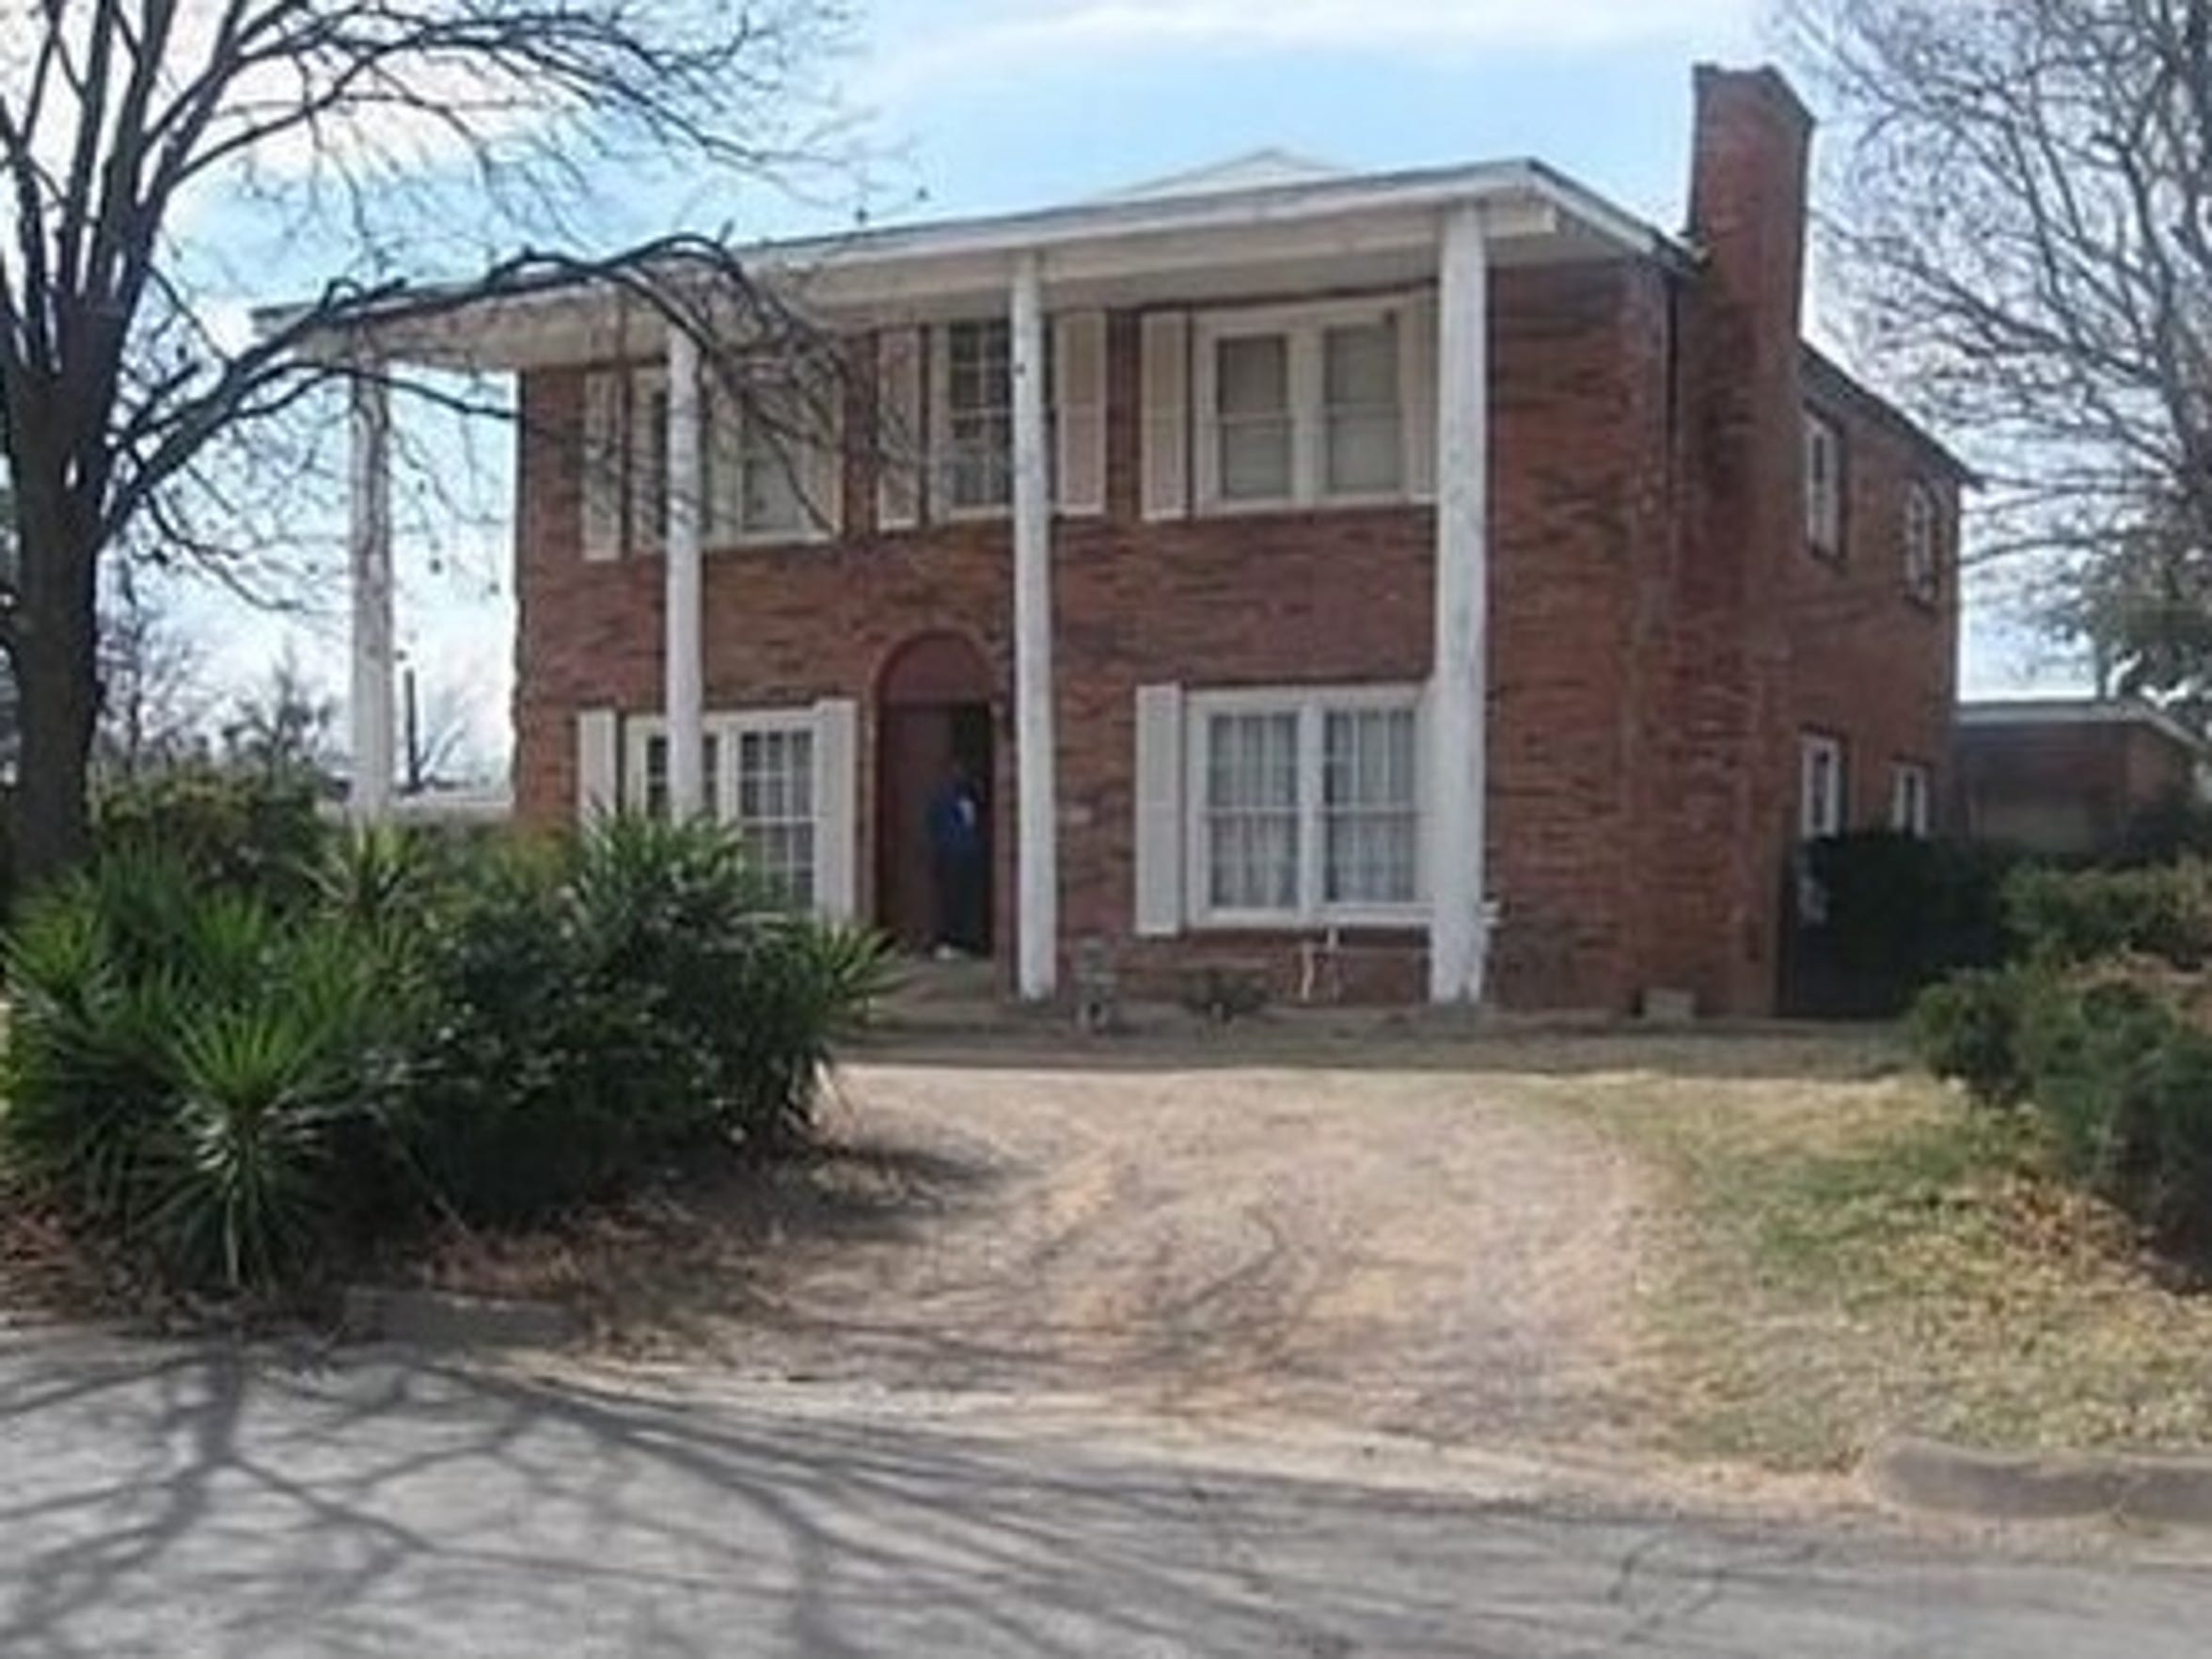 The former home of Idella James, at the corner of Mesquite and North 17th streets. It was moved, family said, from Grape Street in the early 1960s.